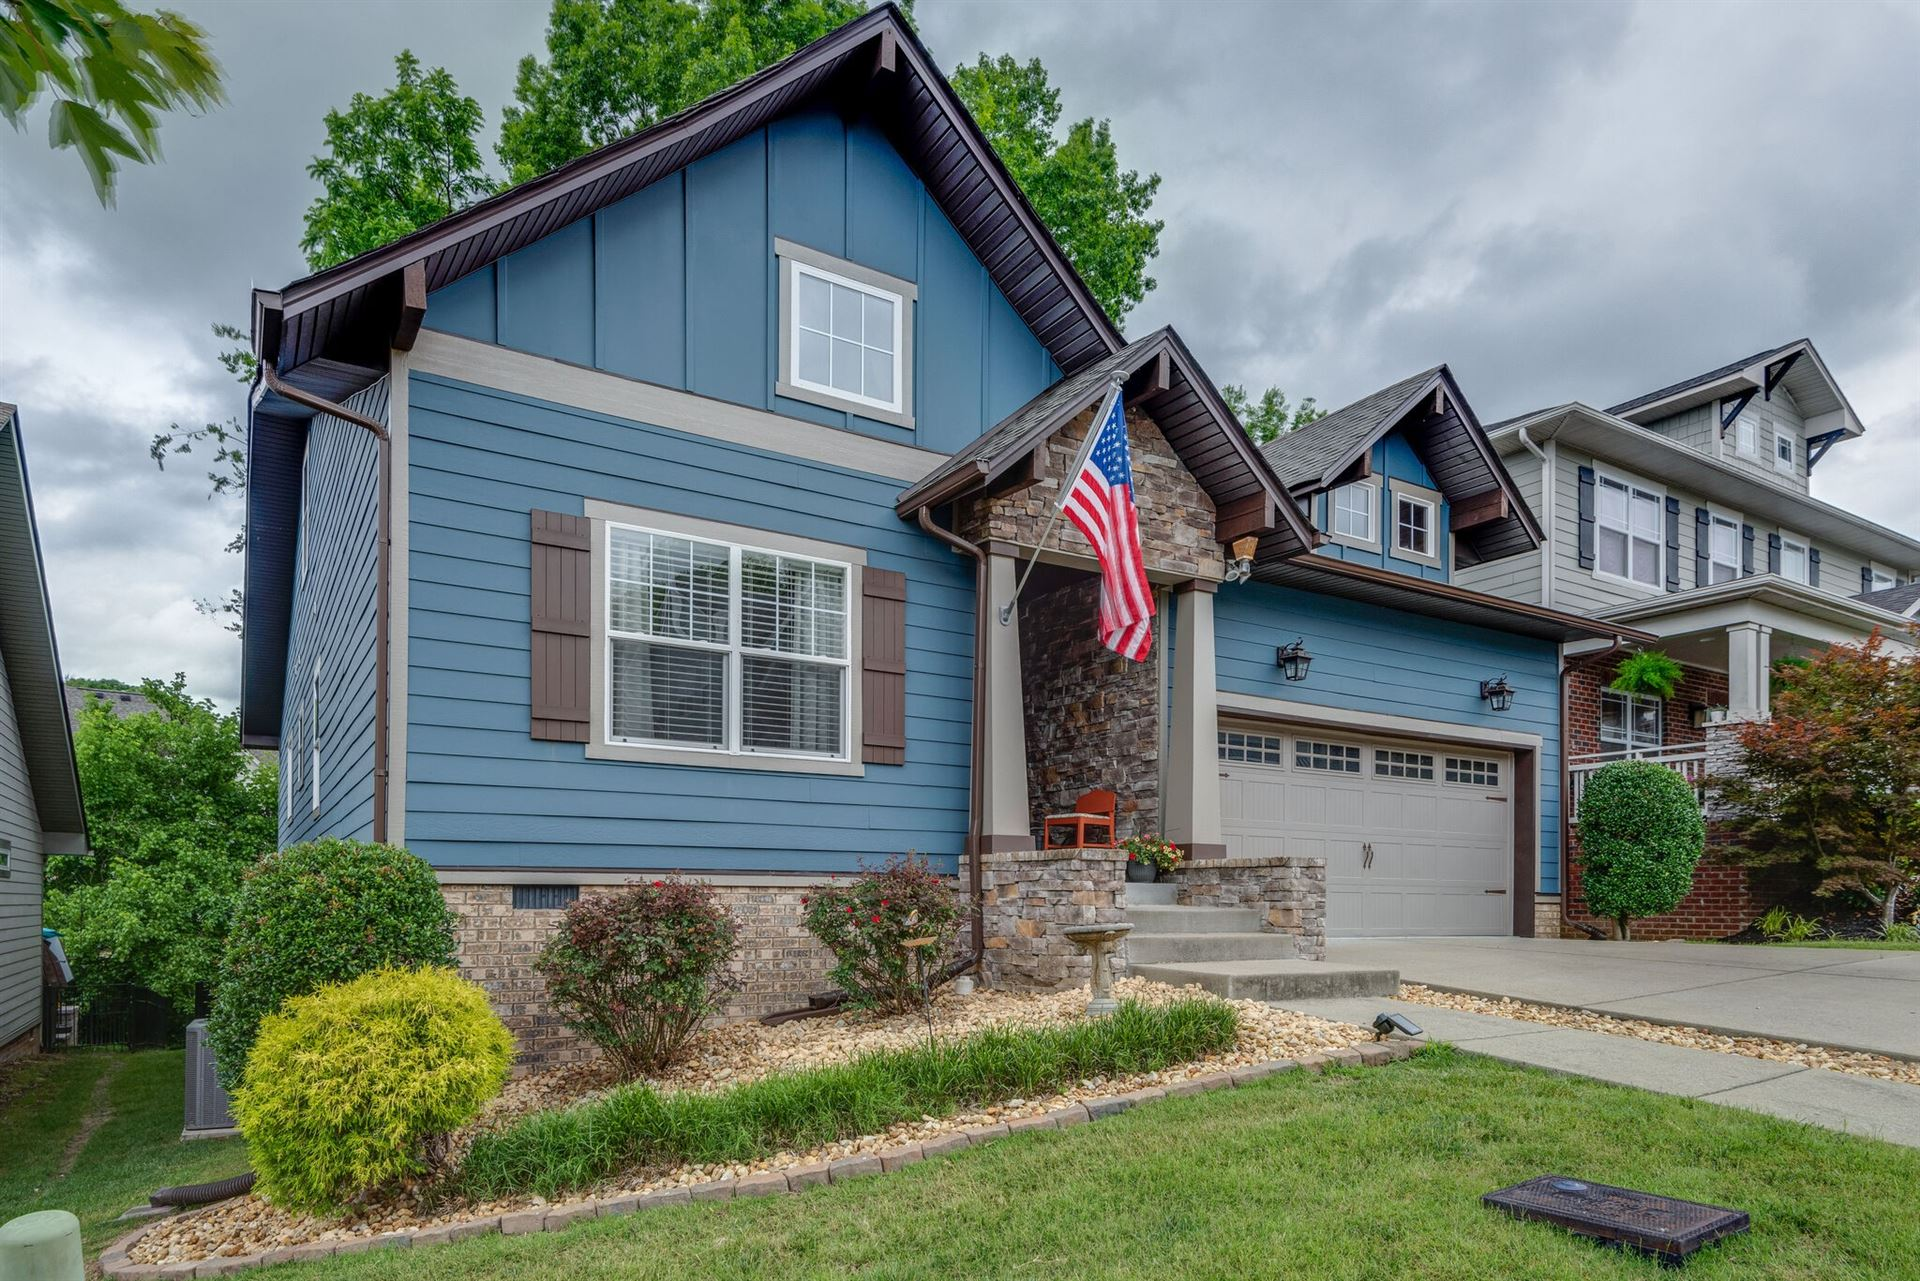 Photo of 445 Highpoint Ter, Brentwood, TN 37027 (MLS # 2261906)